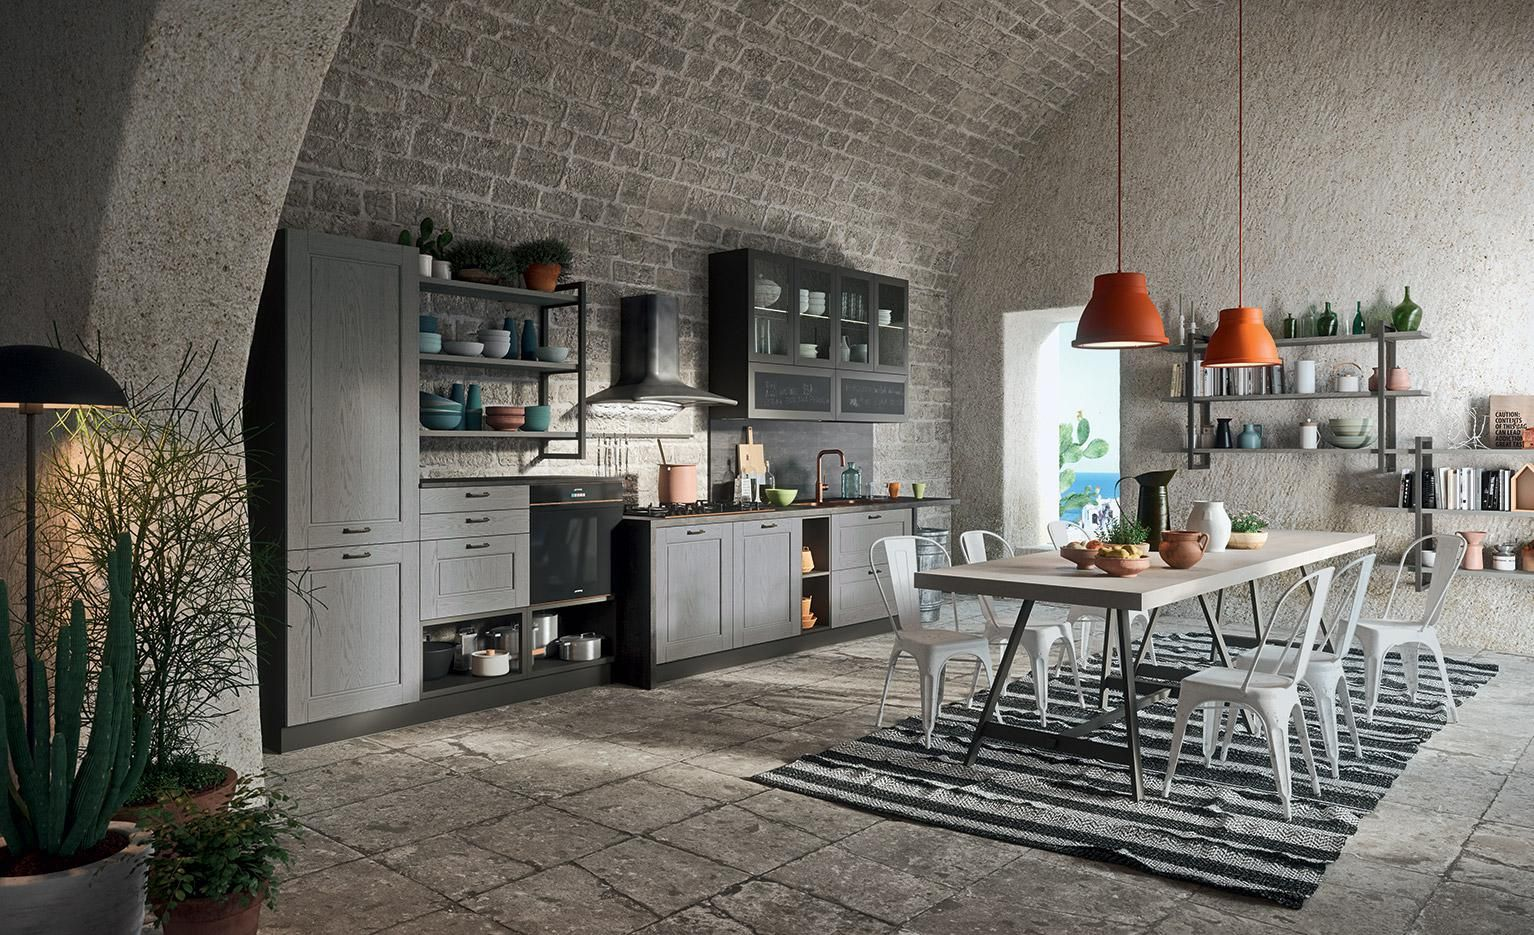 Contemporary Kitchen - La cucina in stile contemporaneo/arredomania ...